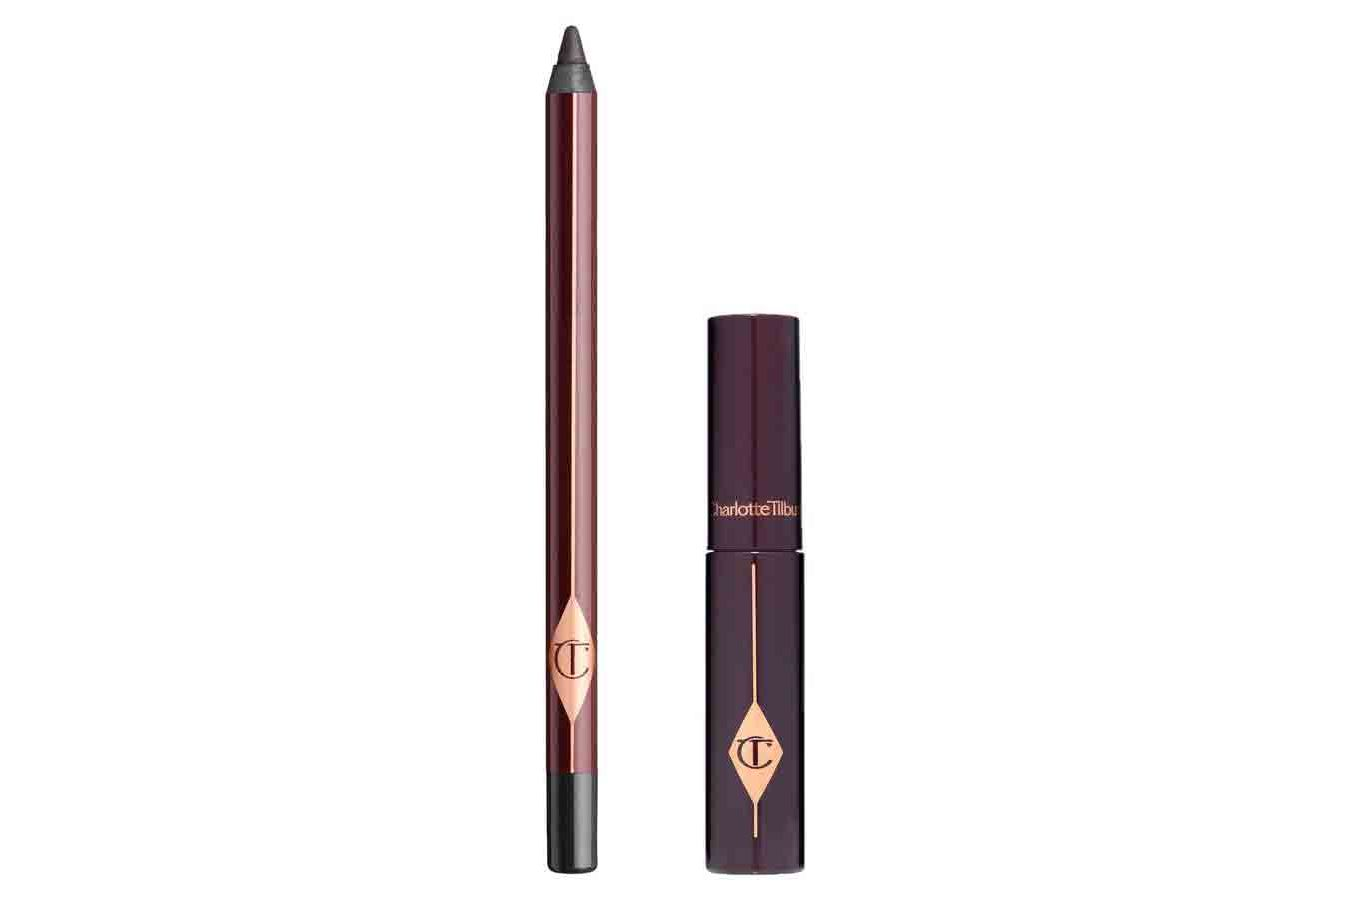 Charlotte Tilbury Eye Essentials Duo